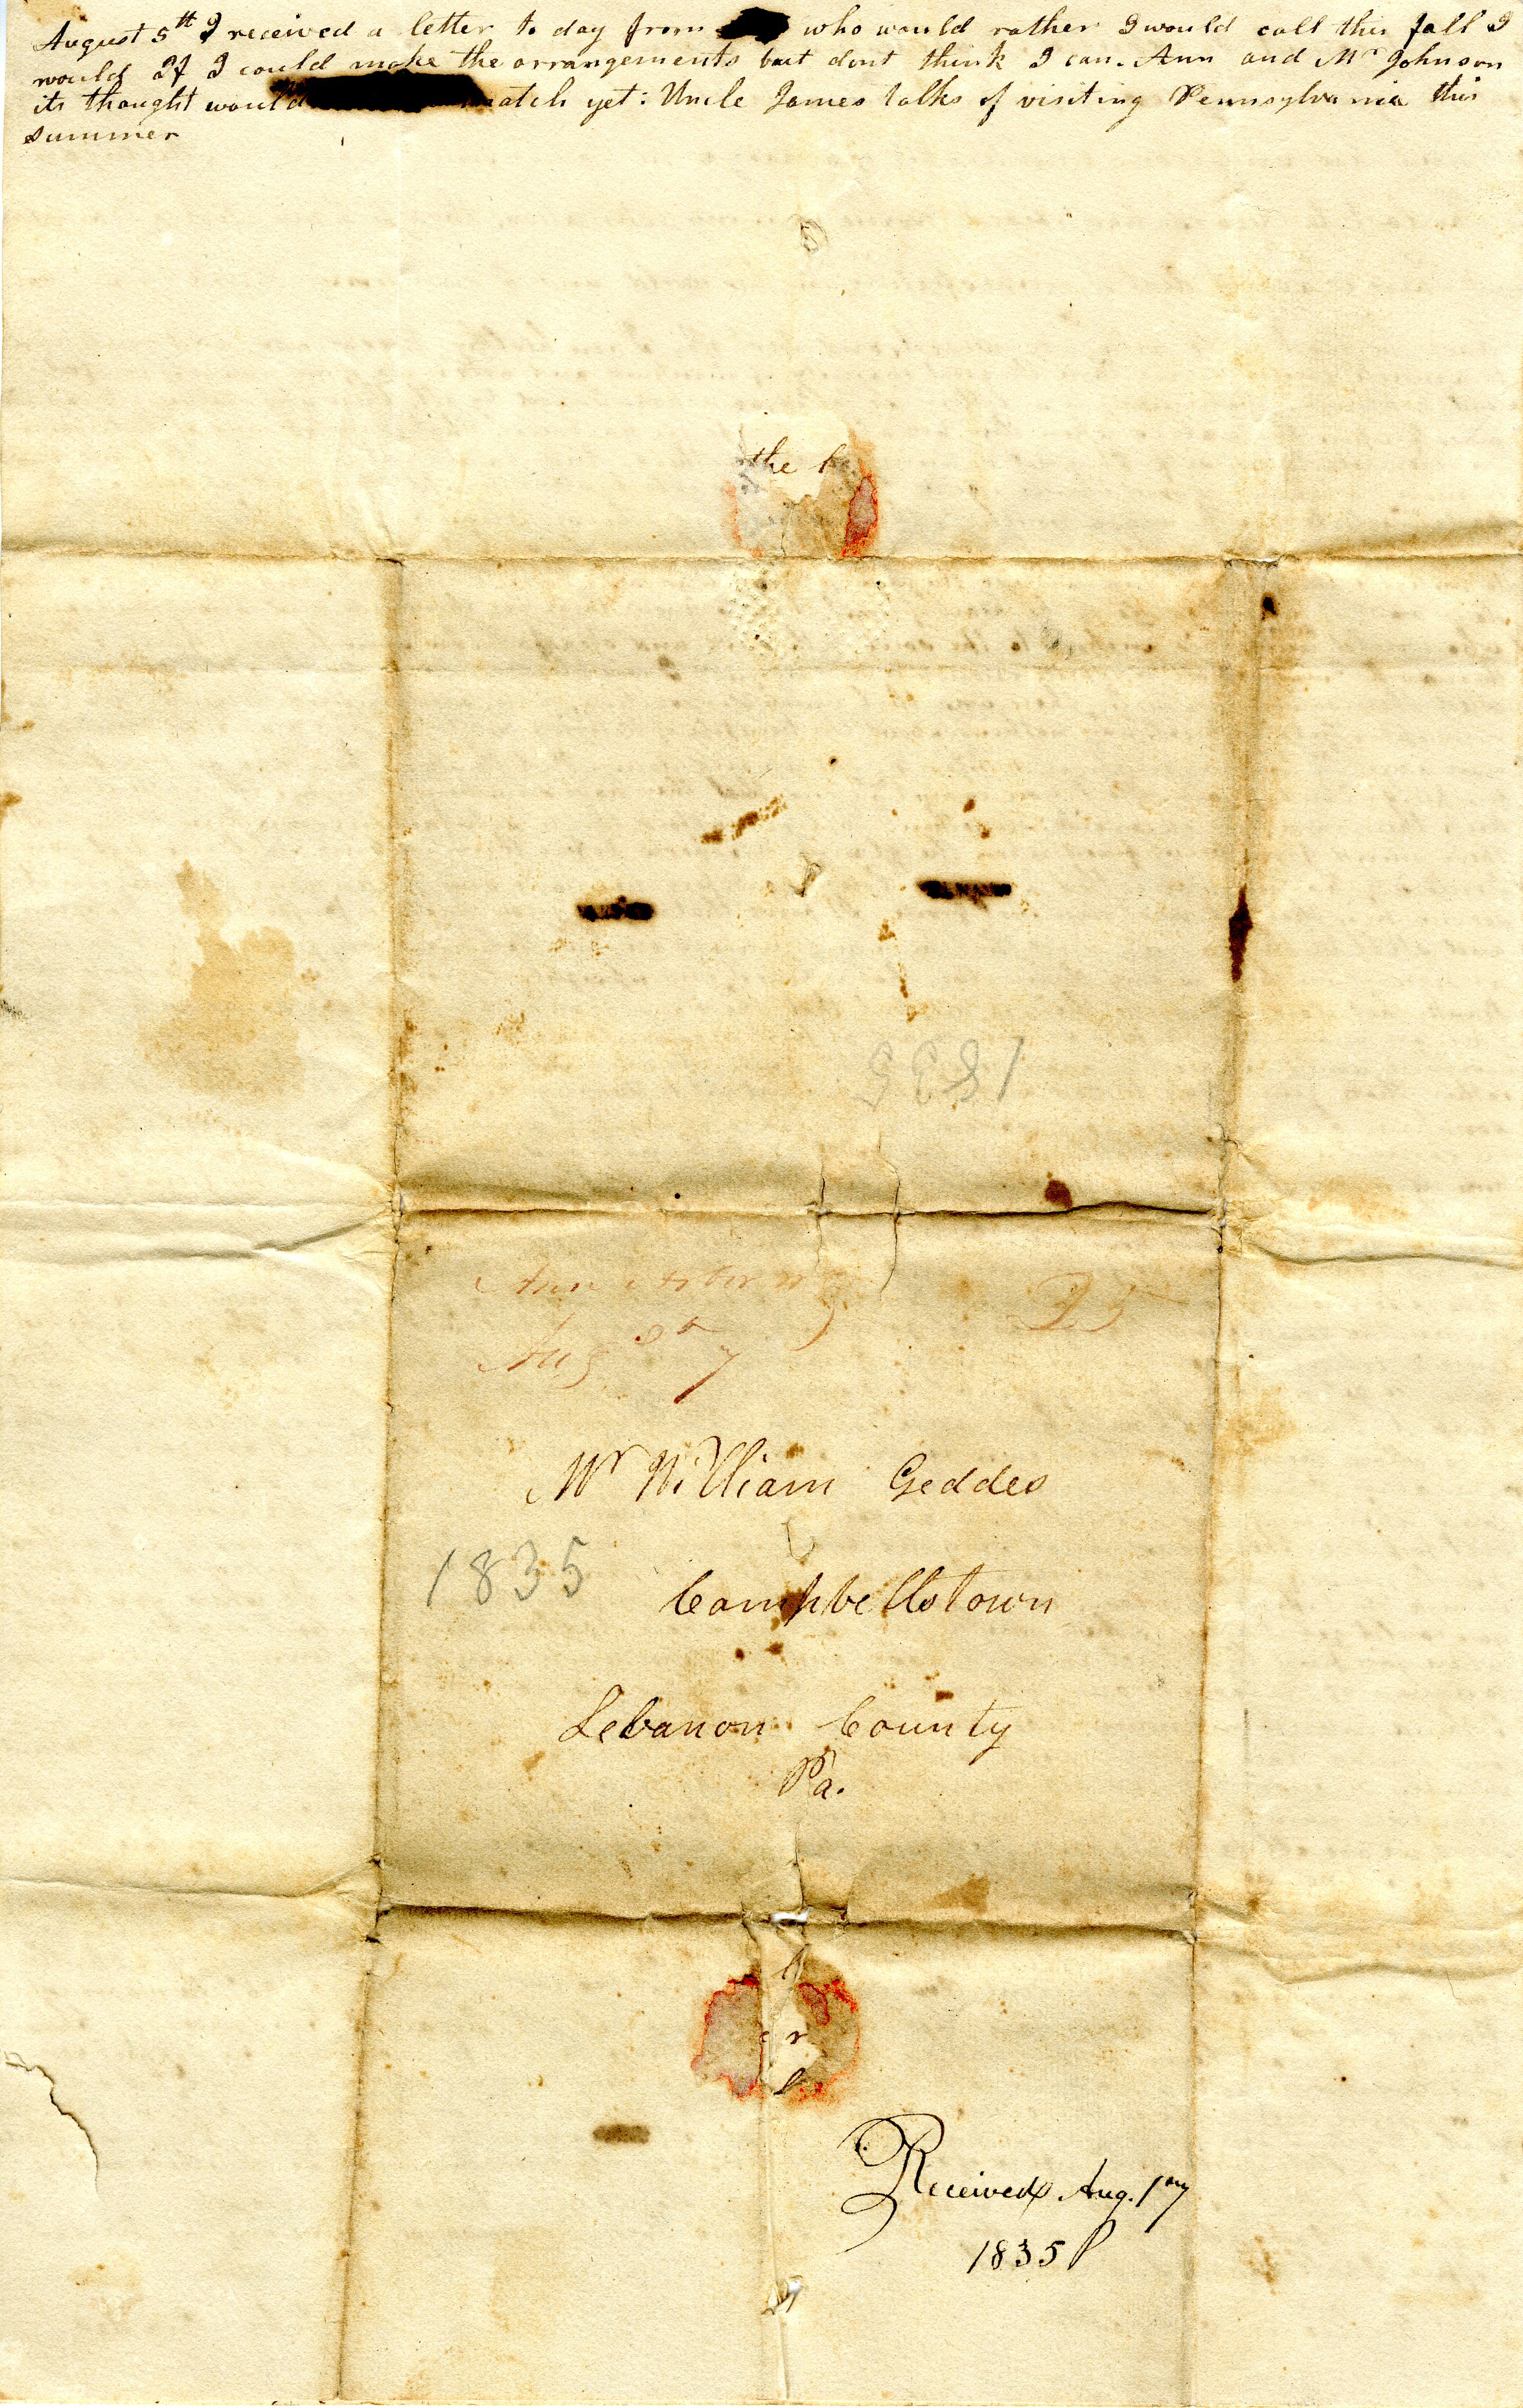 Letter From John Geddes to William Geddes, August 3, 1835 image